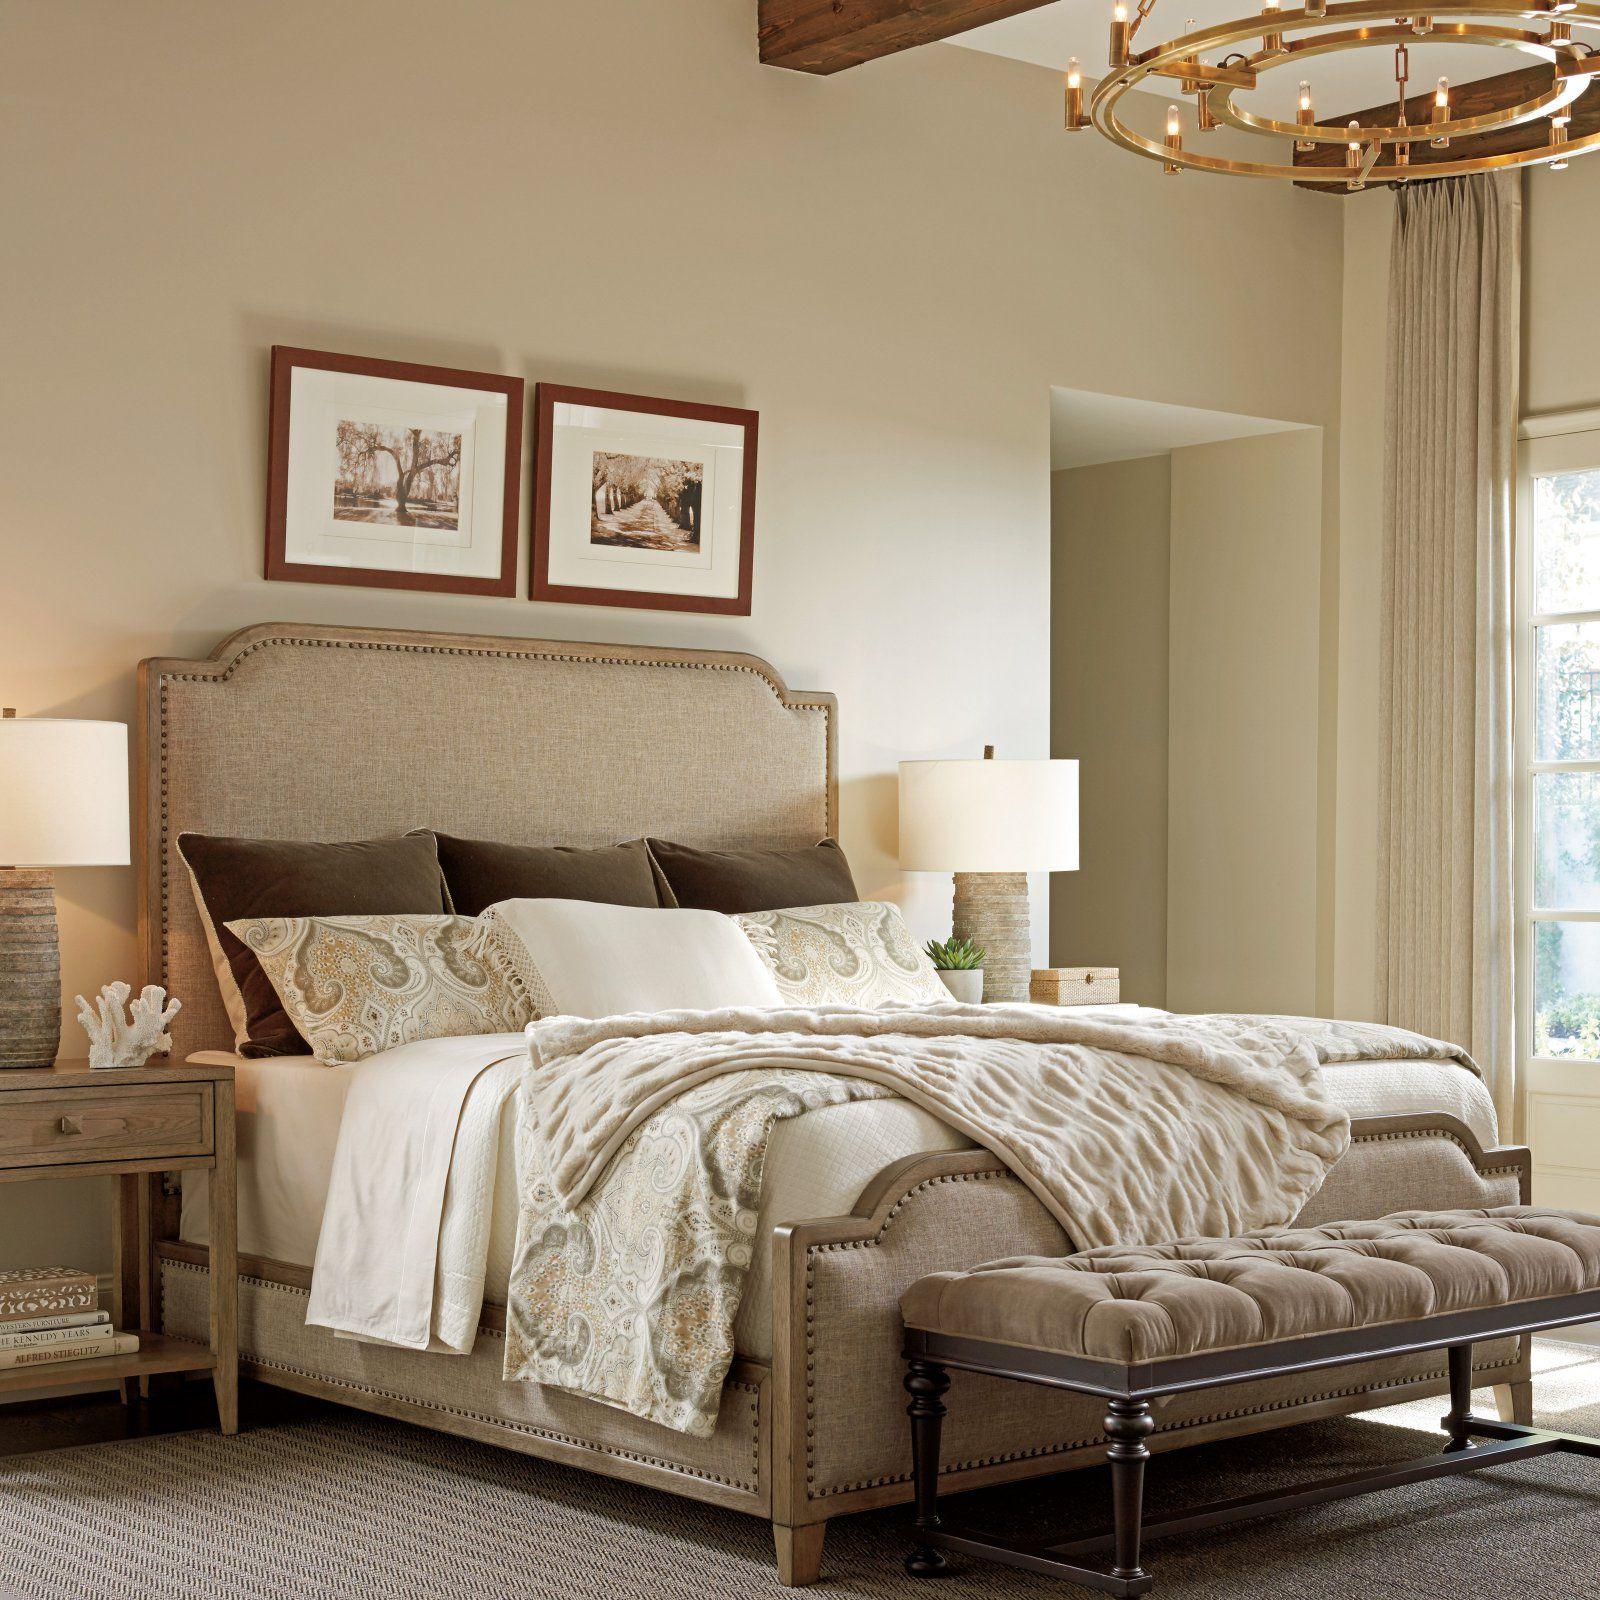 tommy bahama home cypress point stone harbour upholstered bed size rh pinterest com